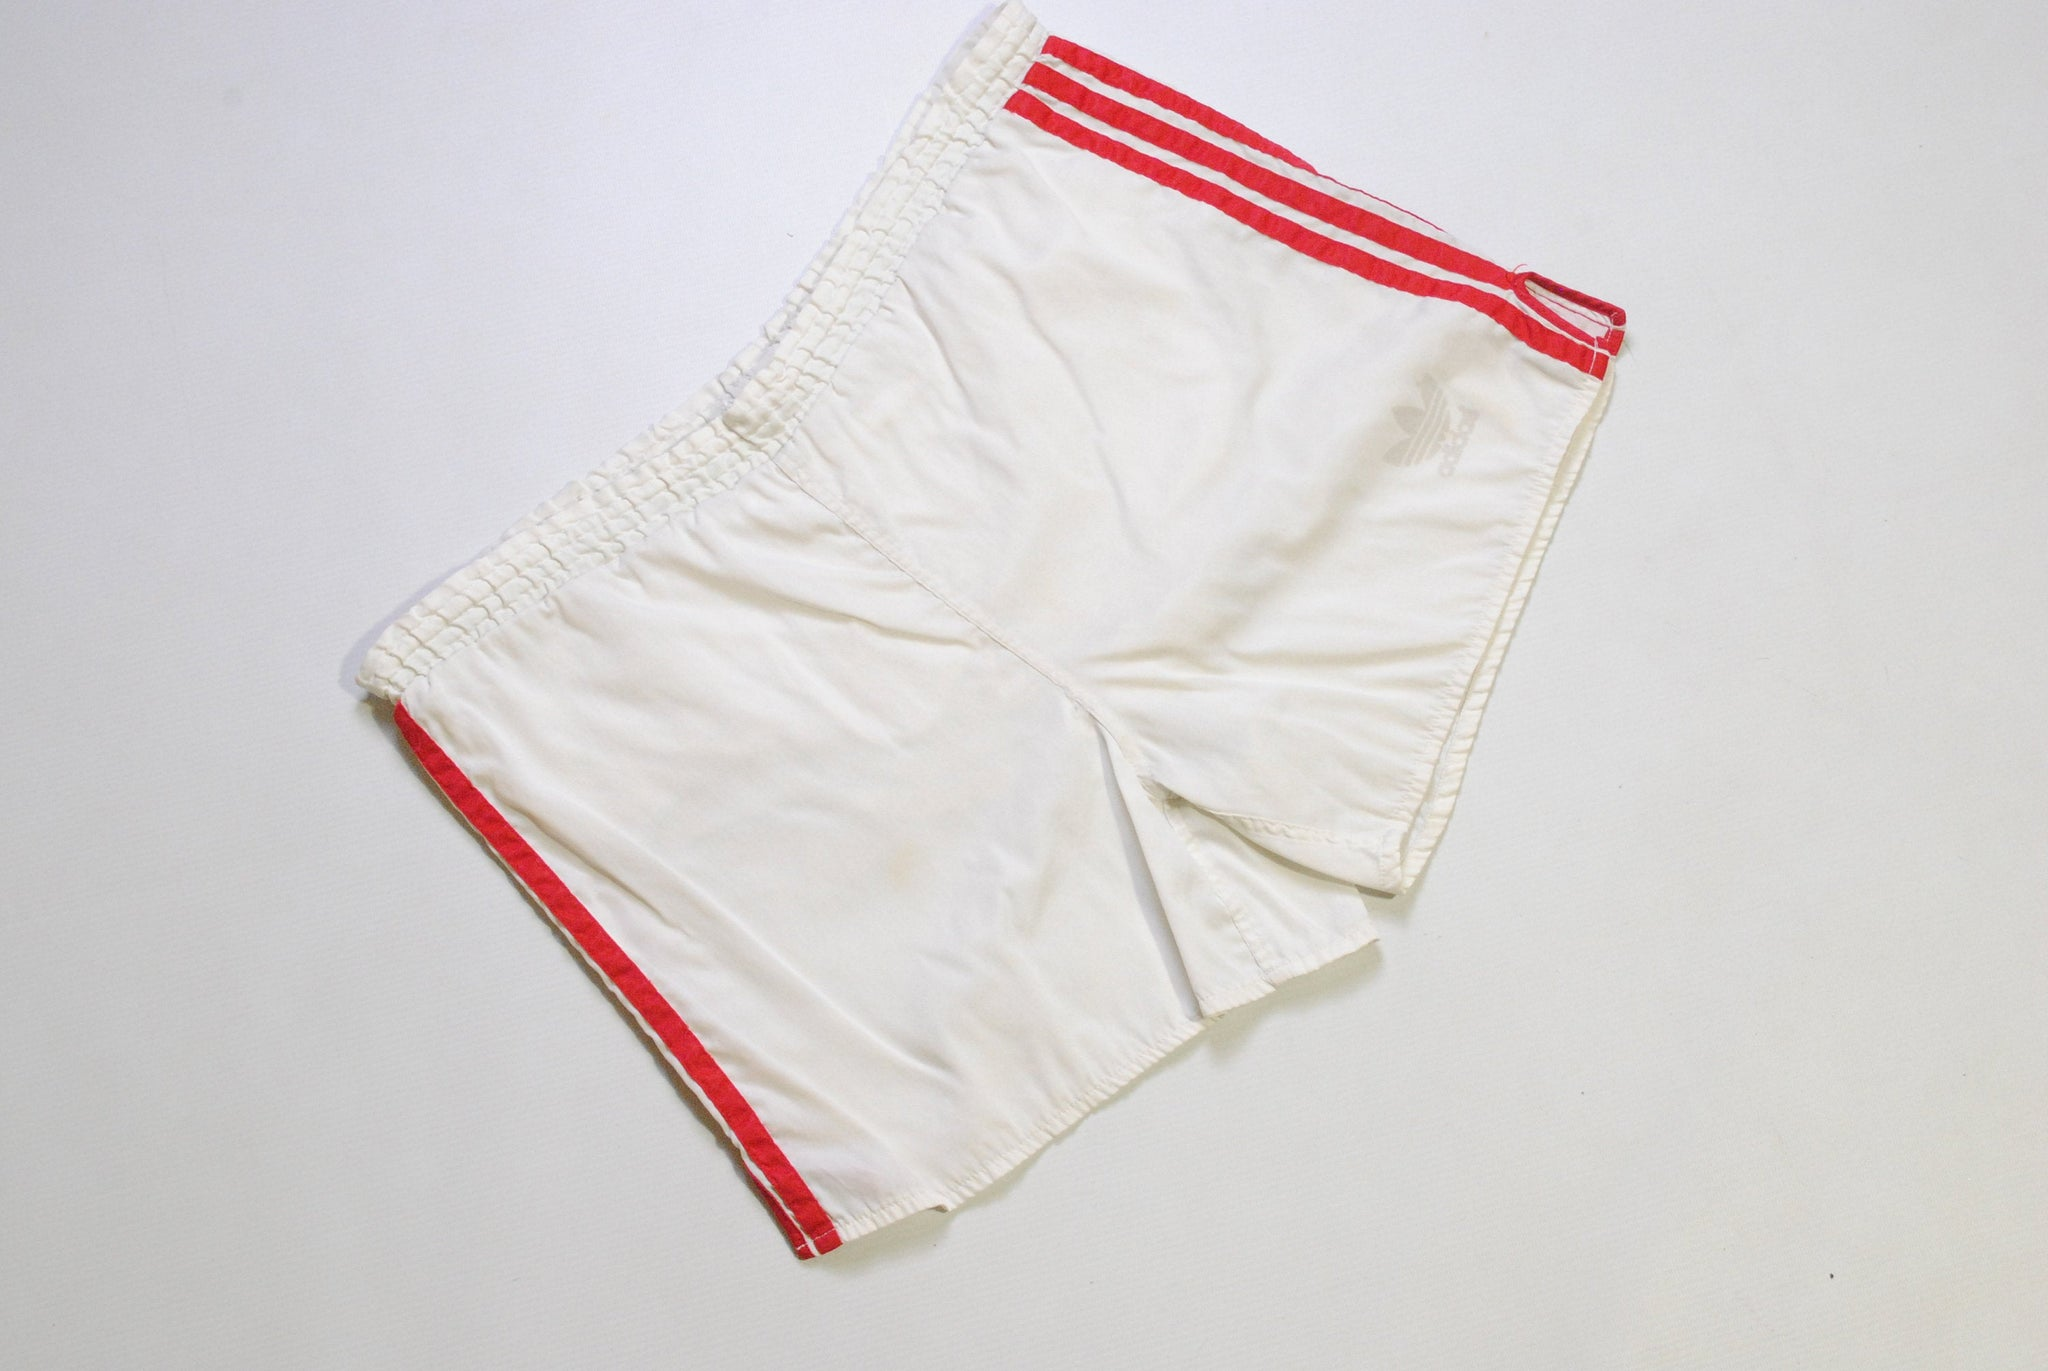 vintage ADIDAS ORIGINALS track shorts SIZE M white/red brand three strips authentic 80s suit sport Germany style activewear summer athletic